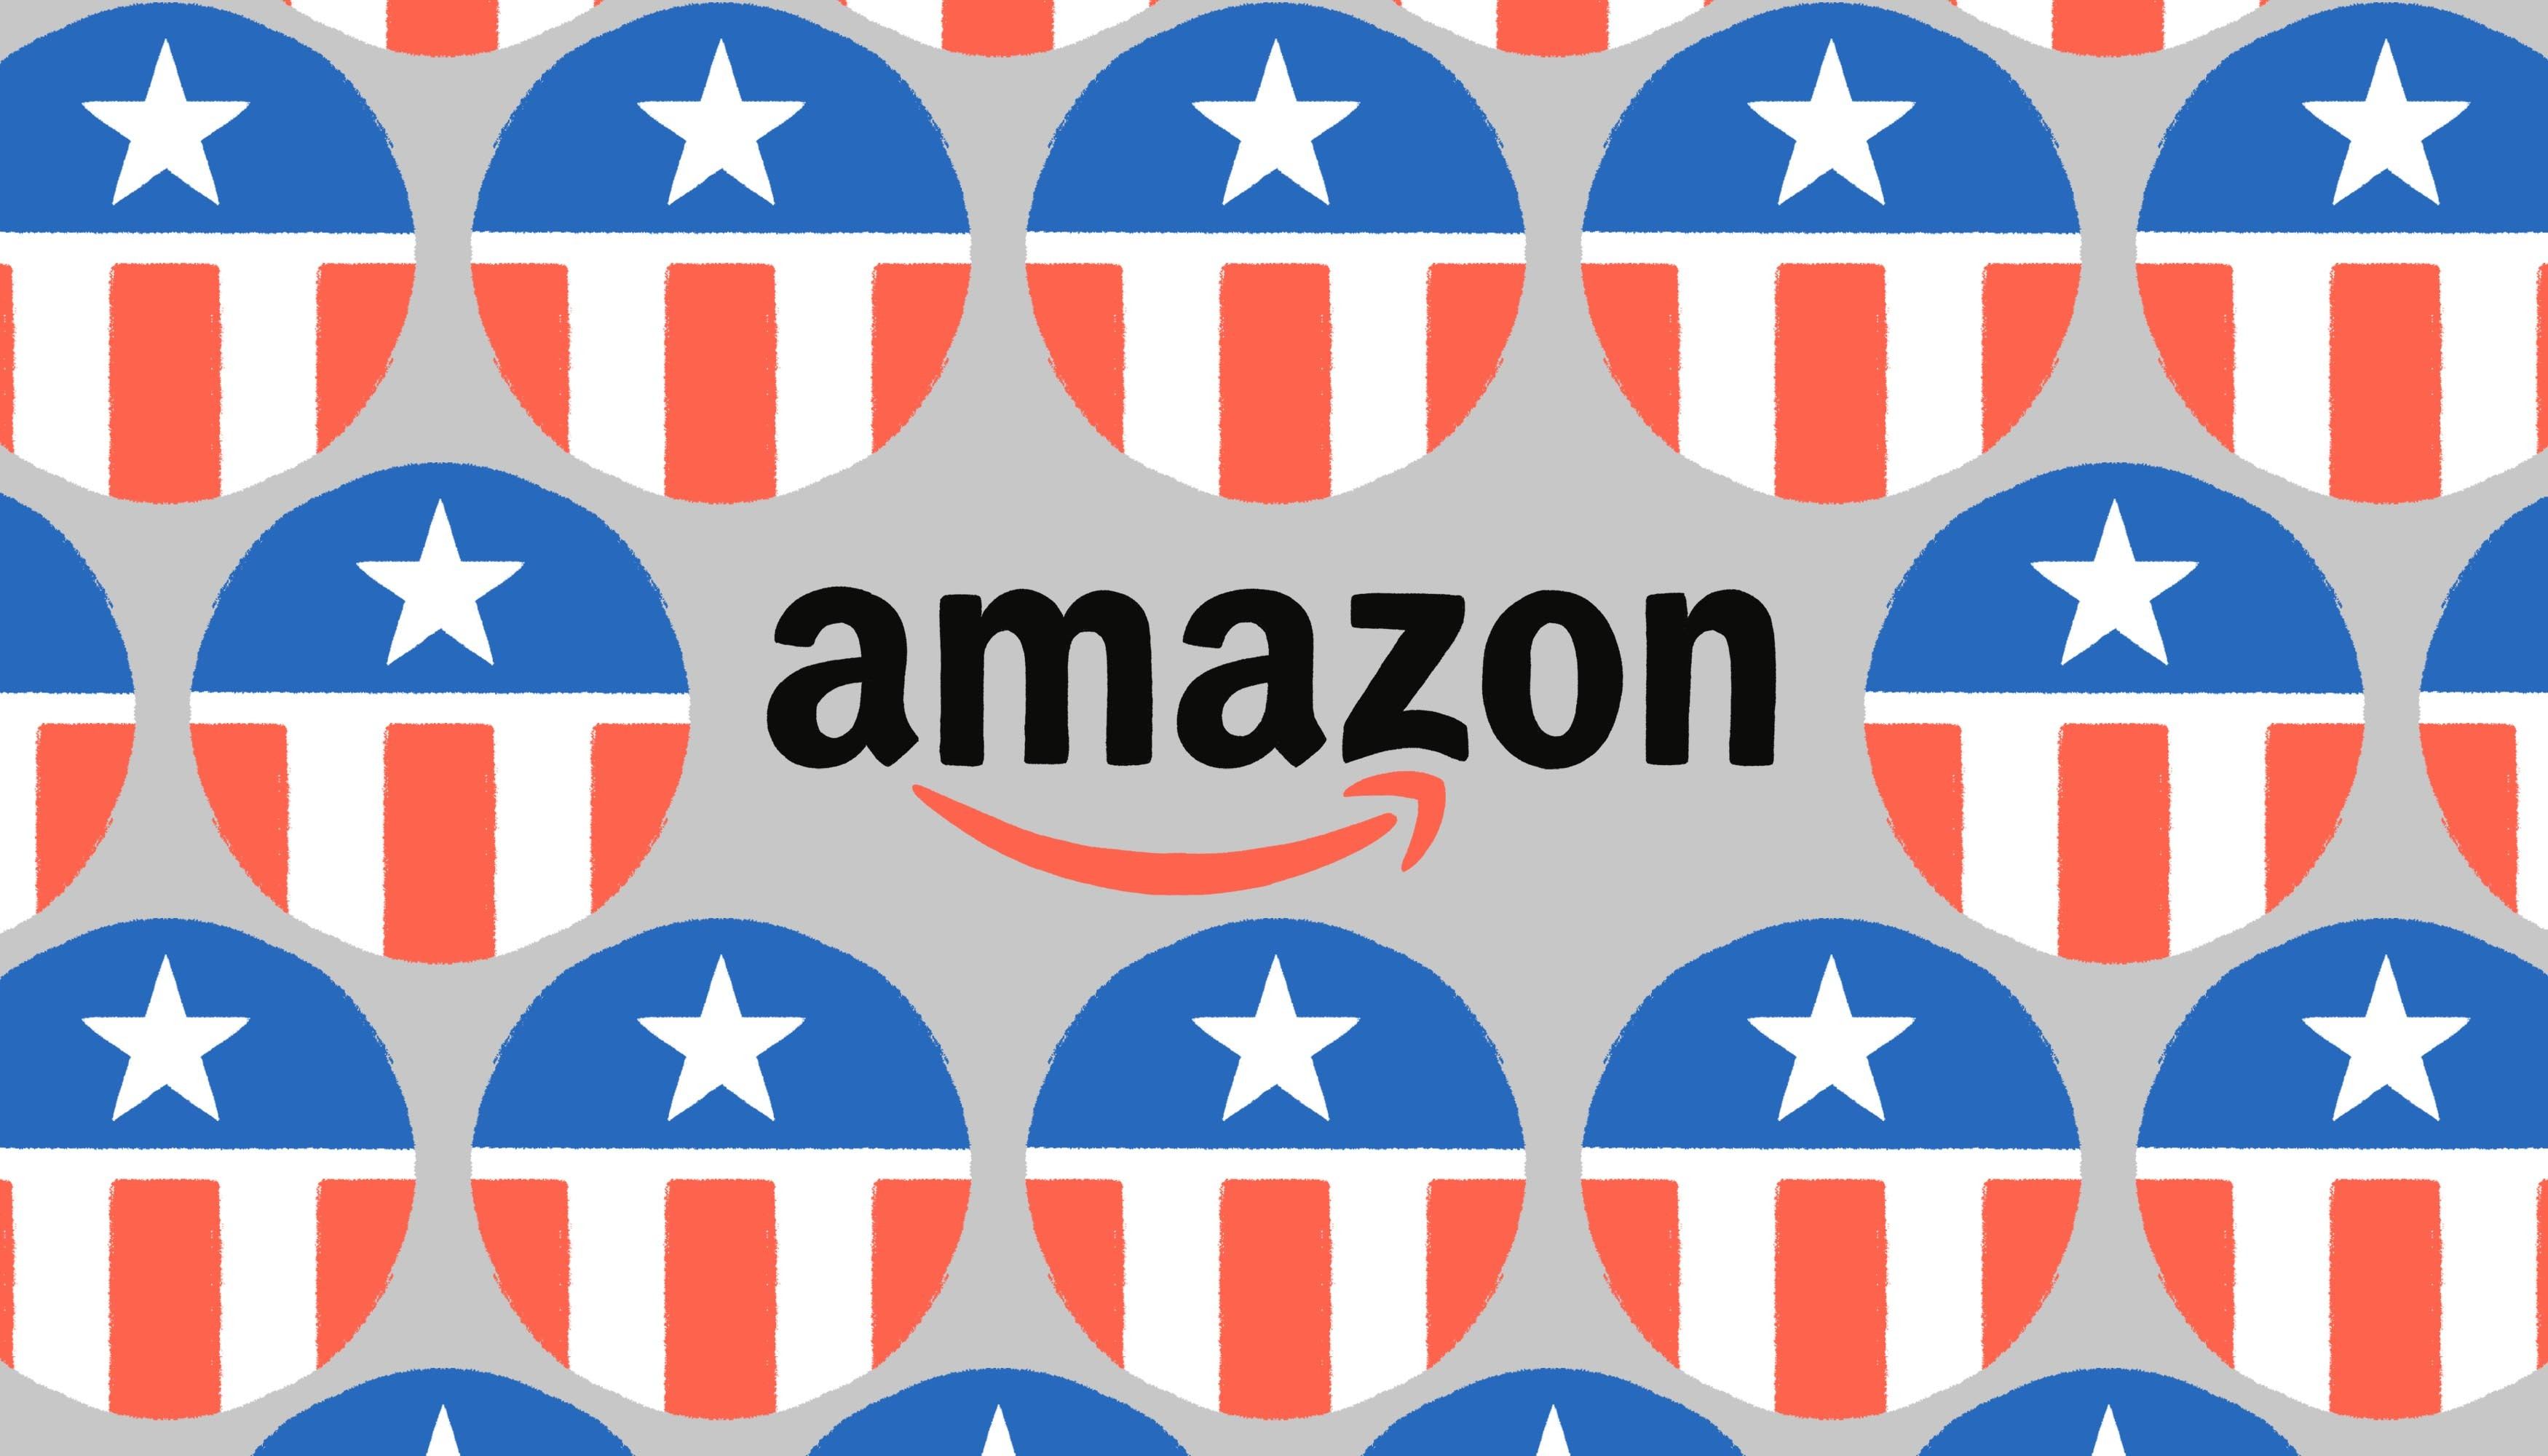 To attract HQ2 D C pitched Amazon a taxpayer funded ambassador one day permit approvals